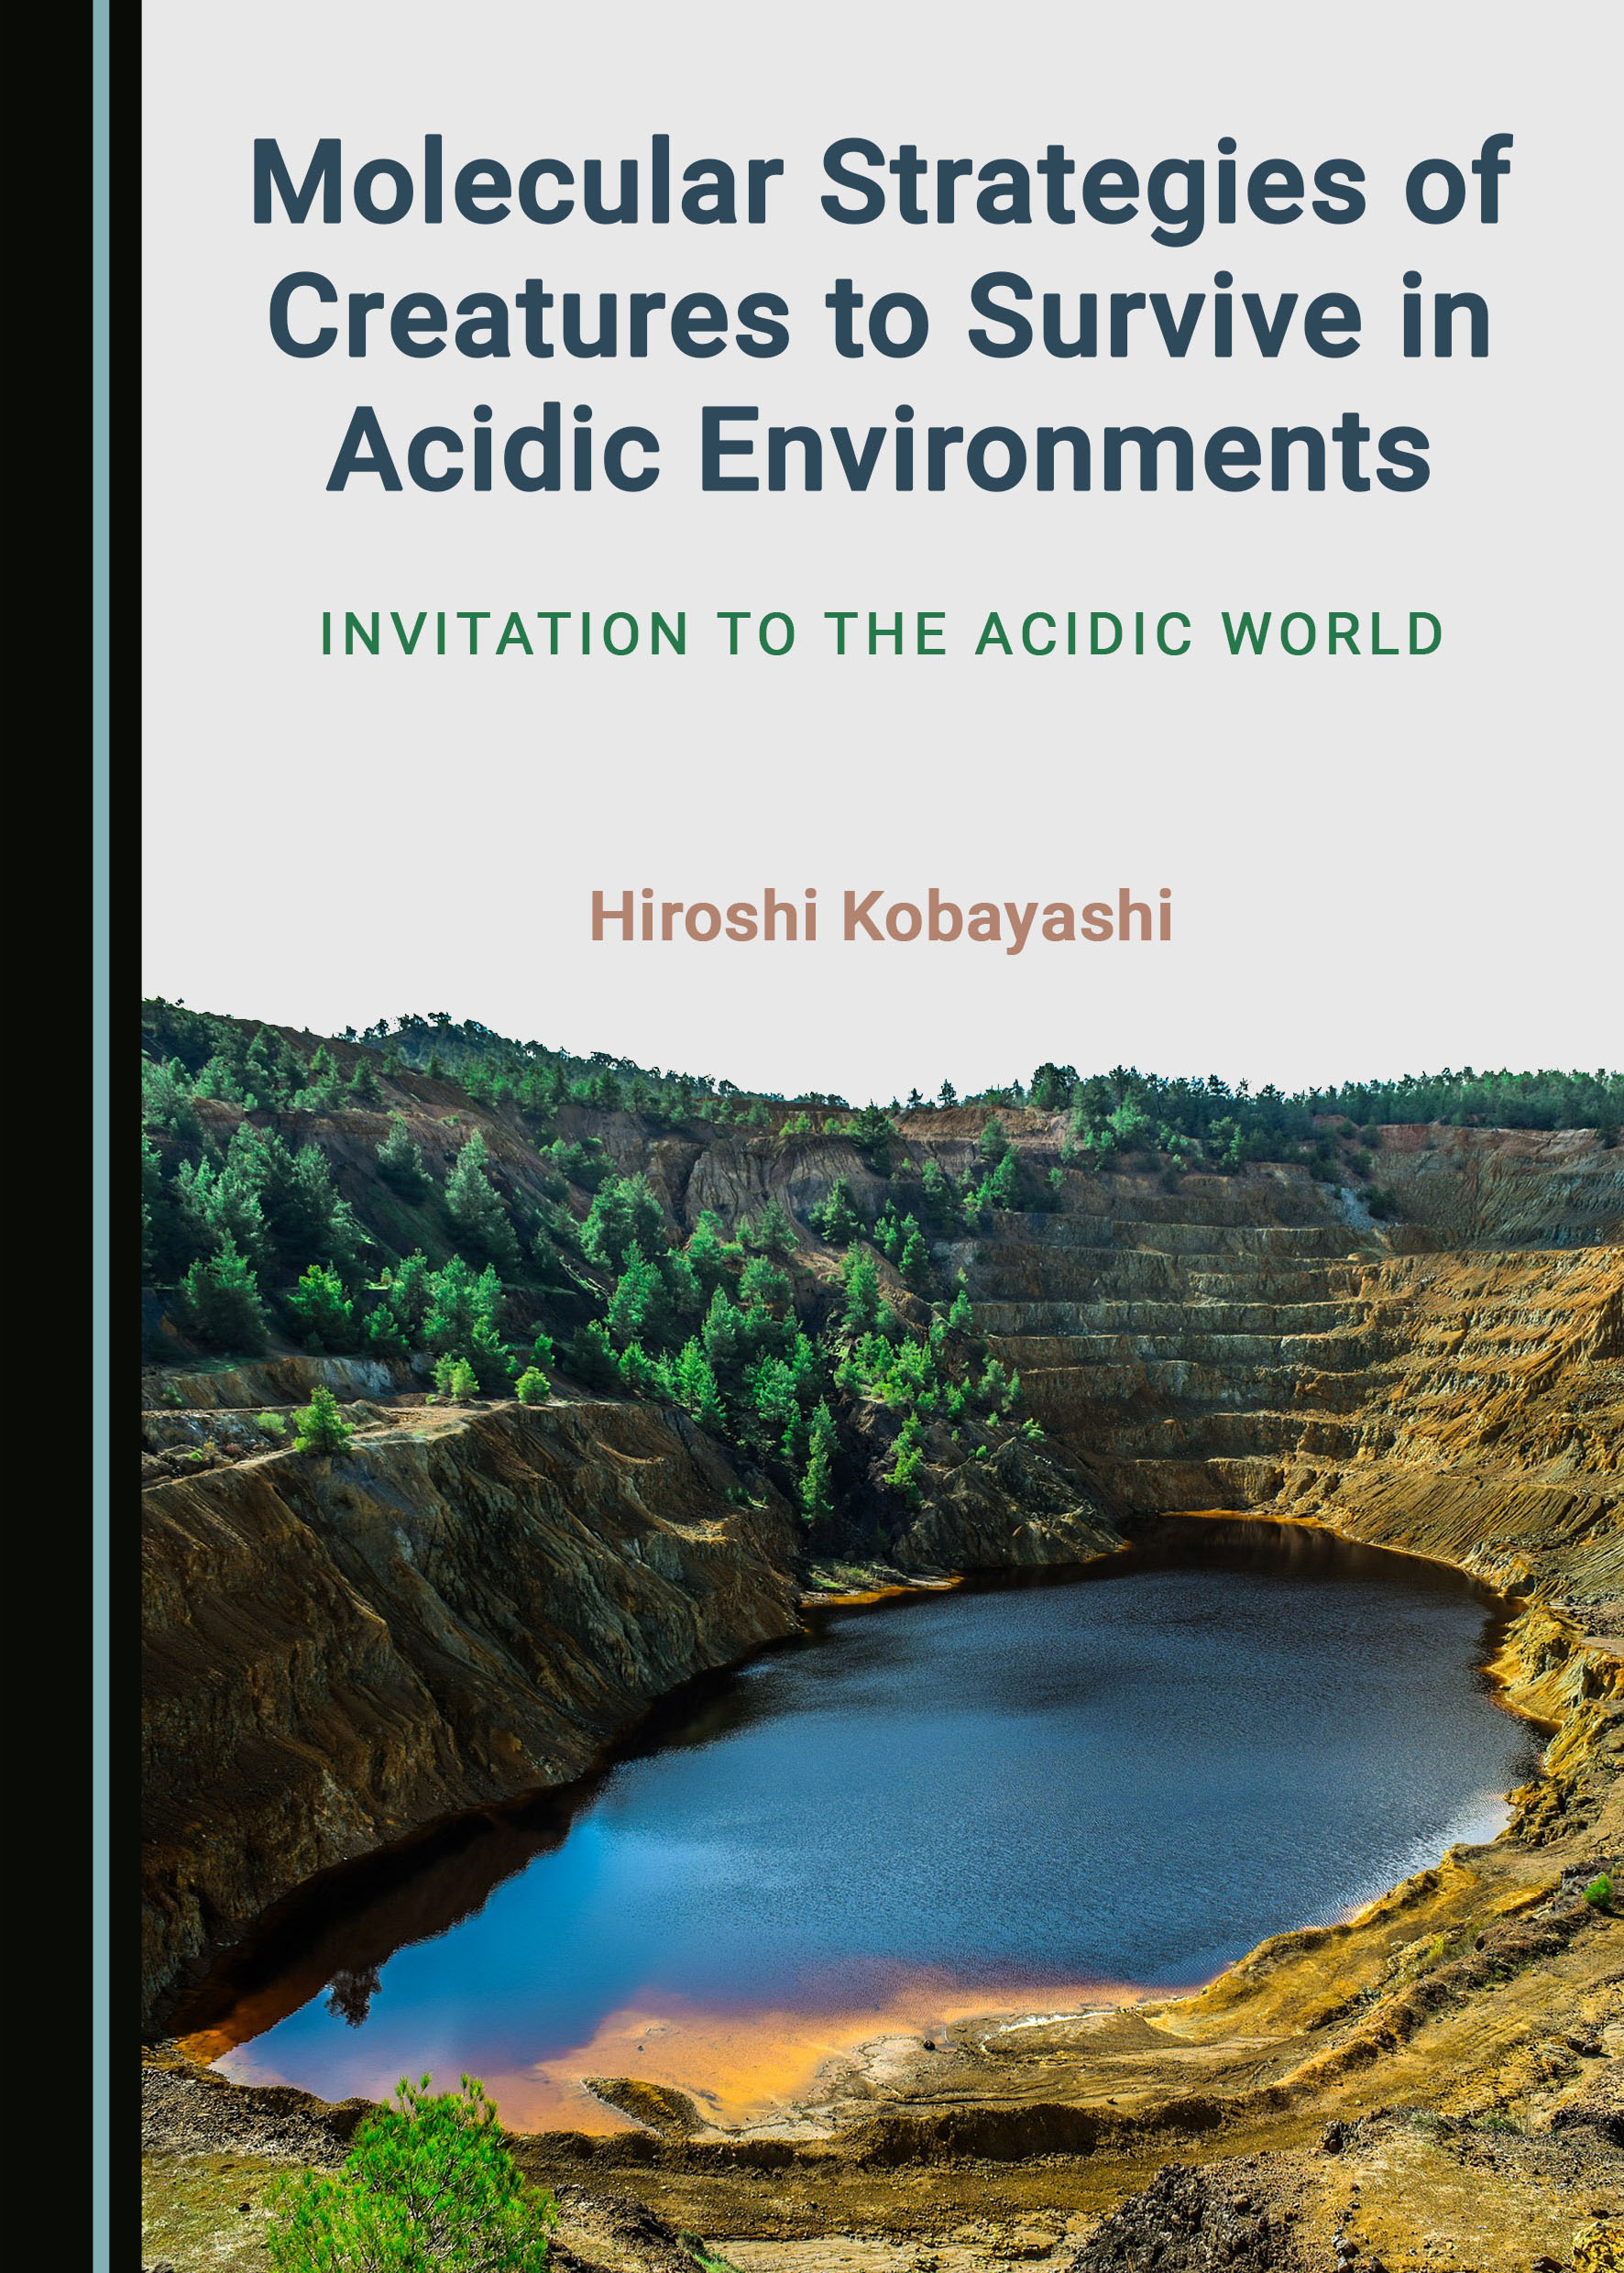 Molecular Strategies of Creatures to Survive in Acidic Environments: Invitation to the Acidic World